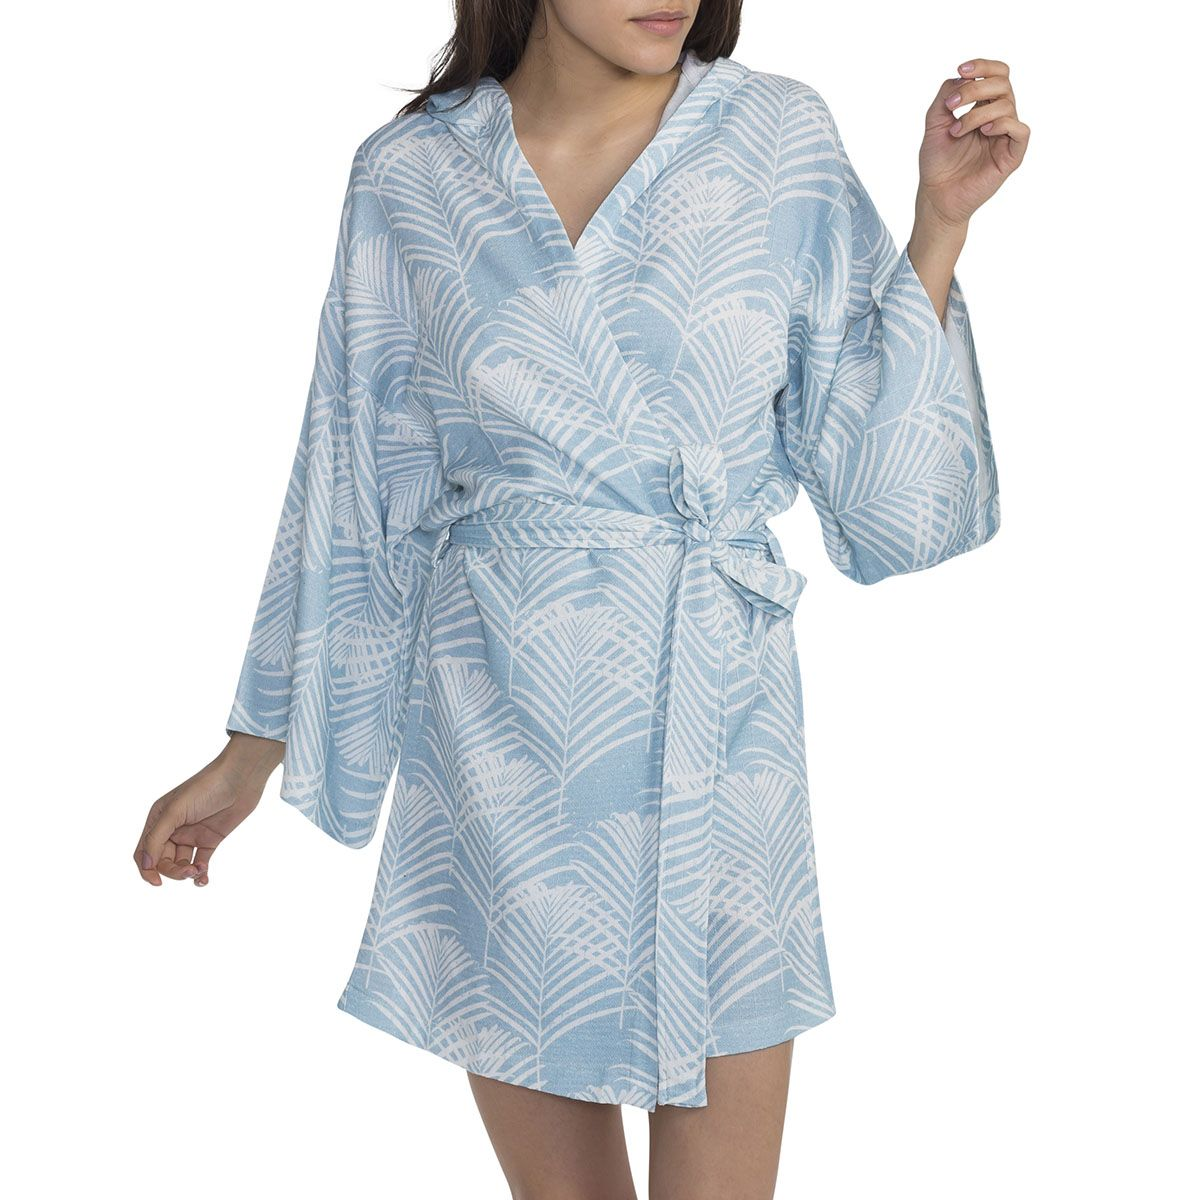 Bathrobe - Blue Palm Tree Printed